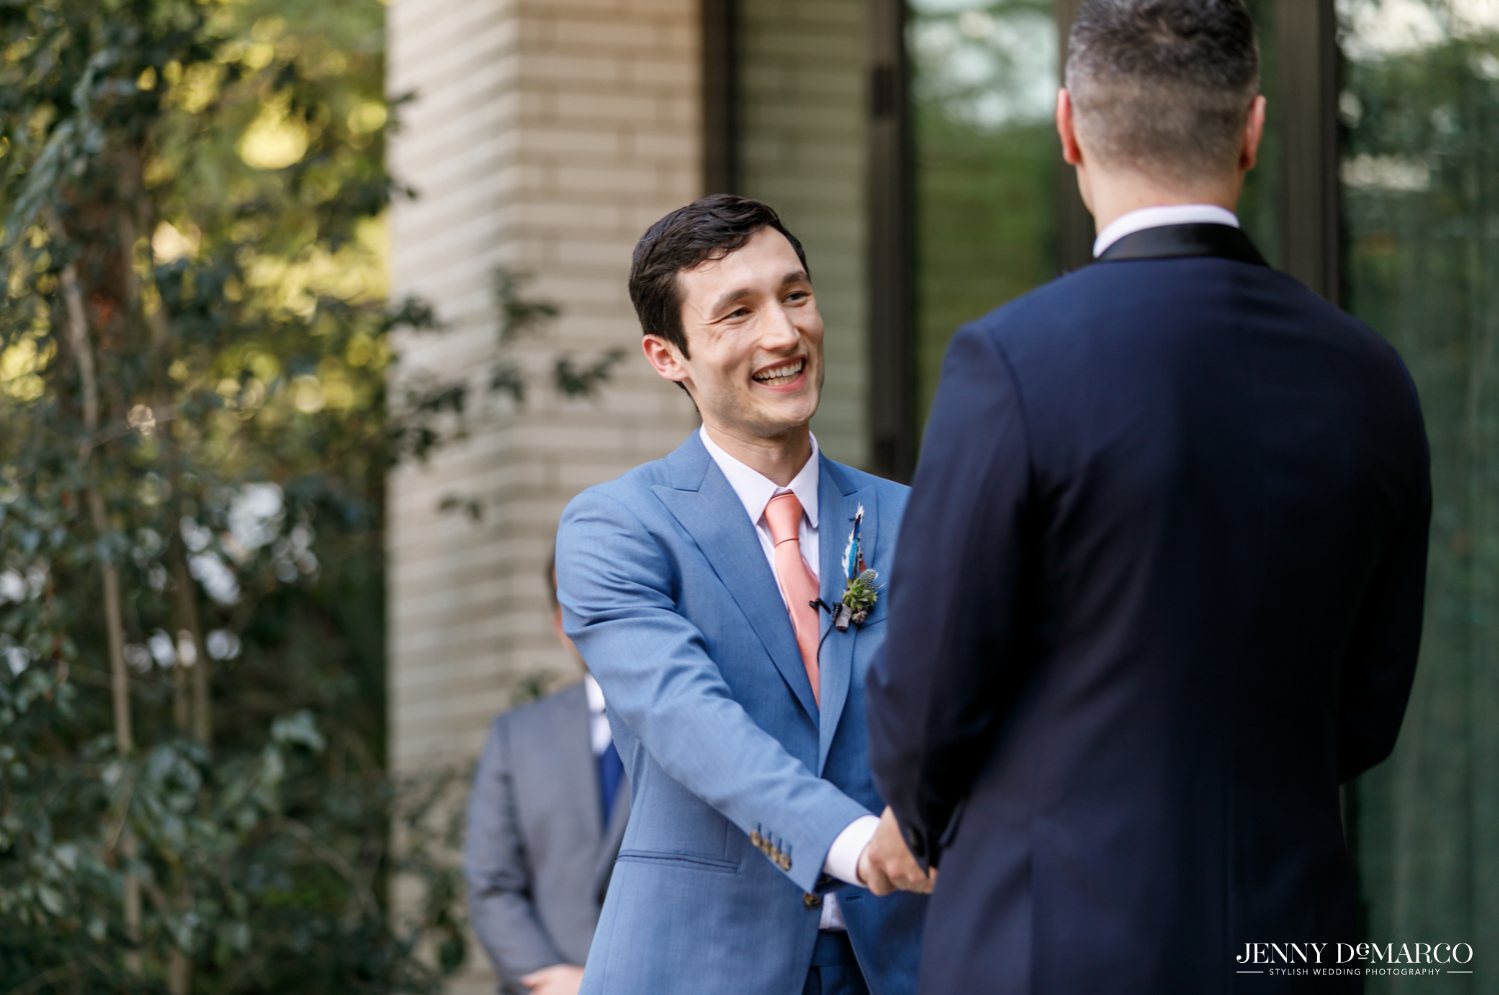 Groom laughing at spouse while holding hands